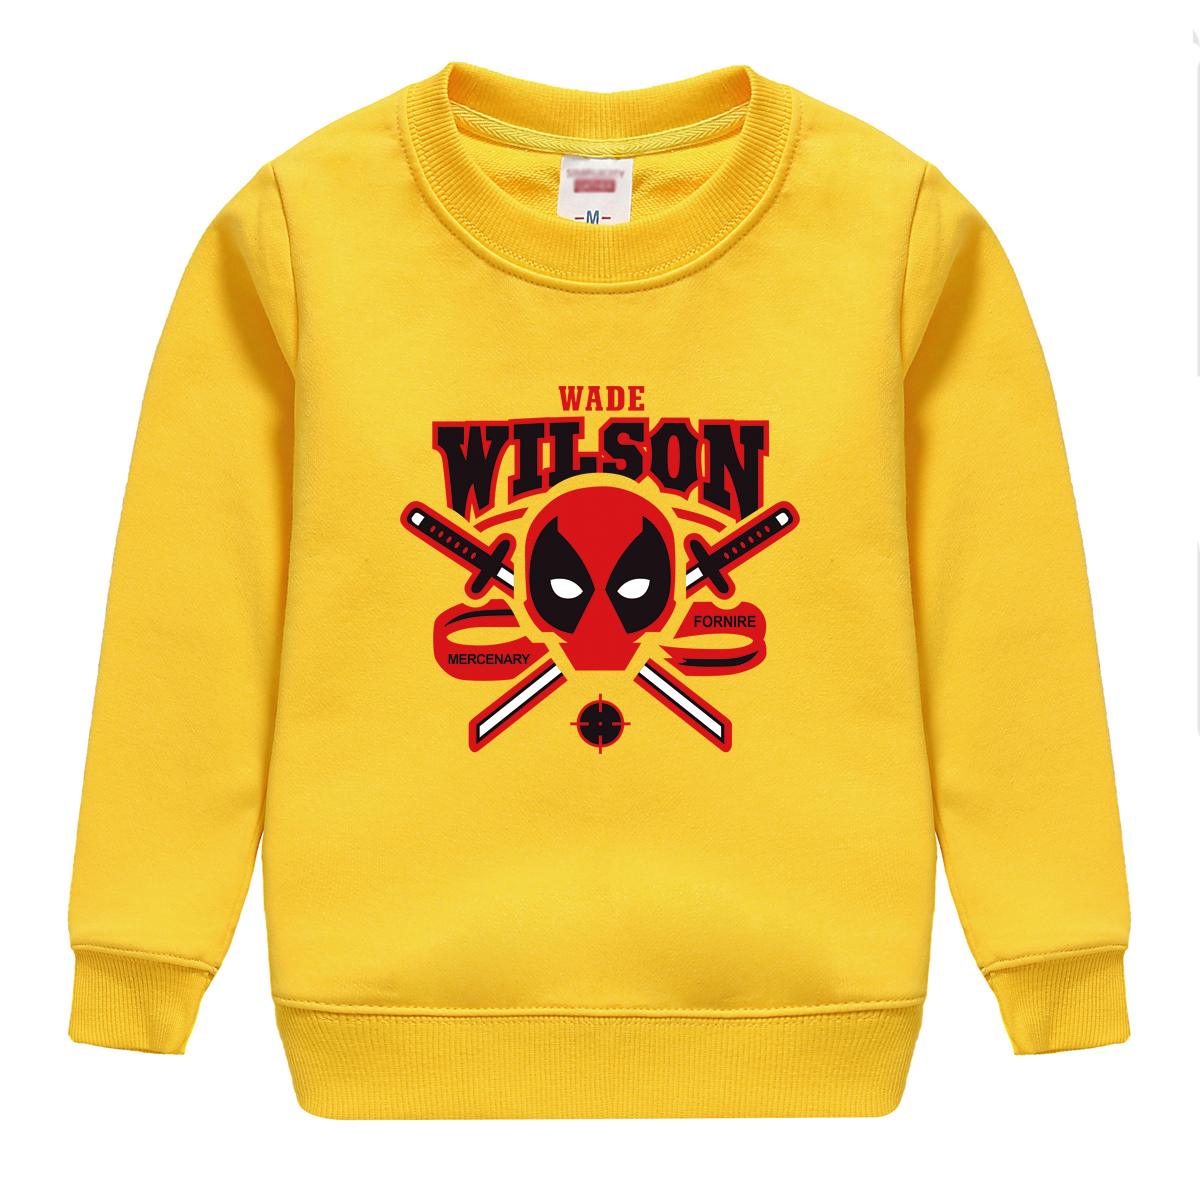 wade wilson pattern 2018 popular sale spring autumn cotton sweatshirt baby boy hoodie sweater top soft outwear high quality tees